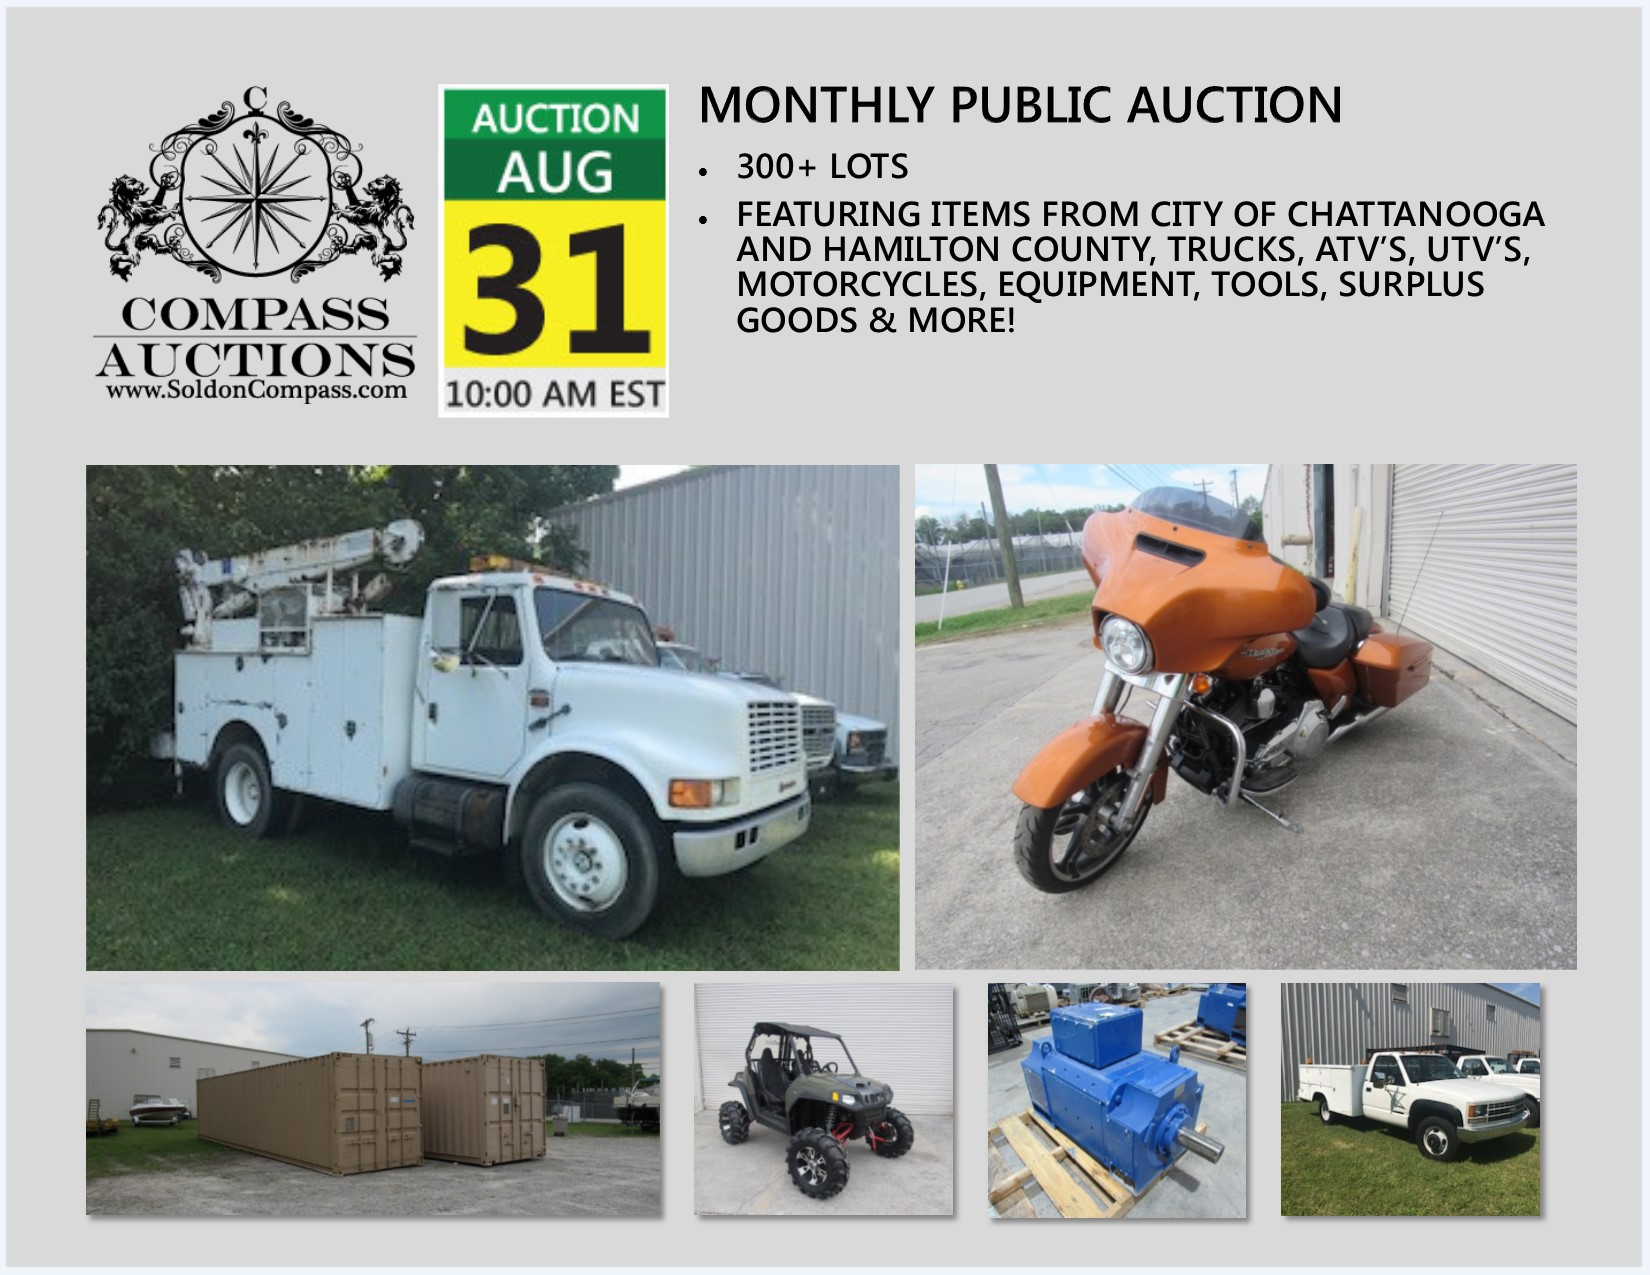 Compass Monthly Public Auction August 31 2017